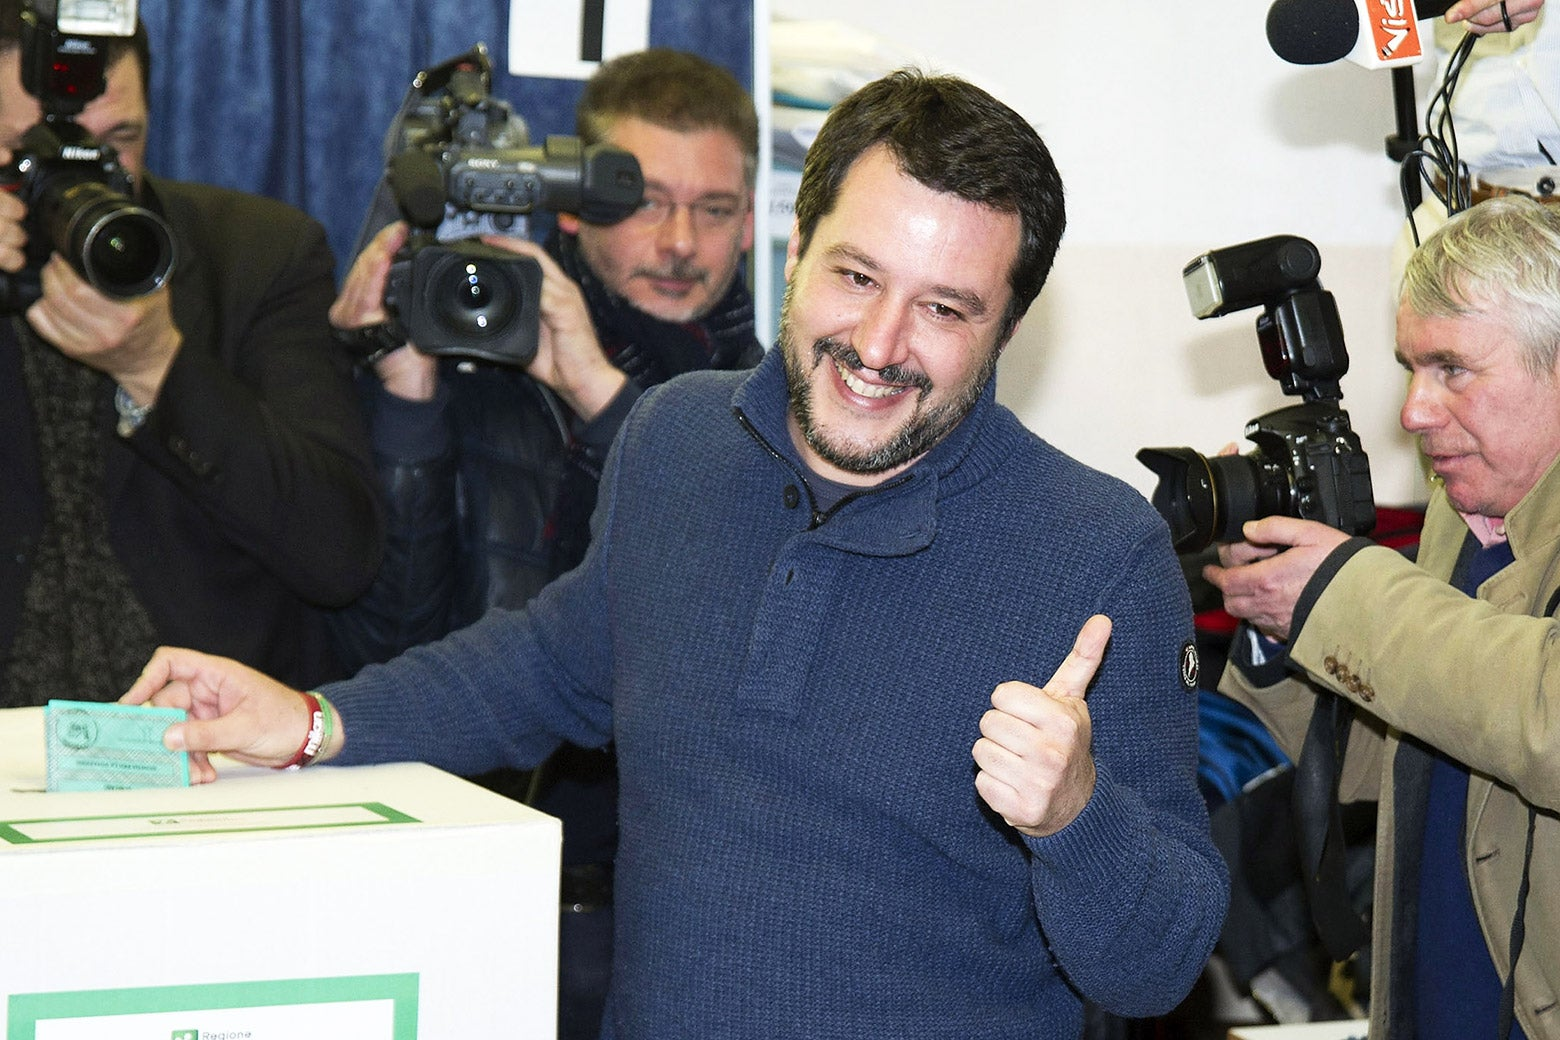 Leader of Lega Nord party Matteo Salvini votes in the Italian General Election at a polling station on March 4, 2018 in Milan, Italy. The economy and immigration are key factors in the 2018 Italian General Election after parliament was dissolved in December 2017.